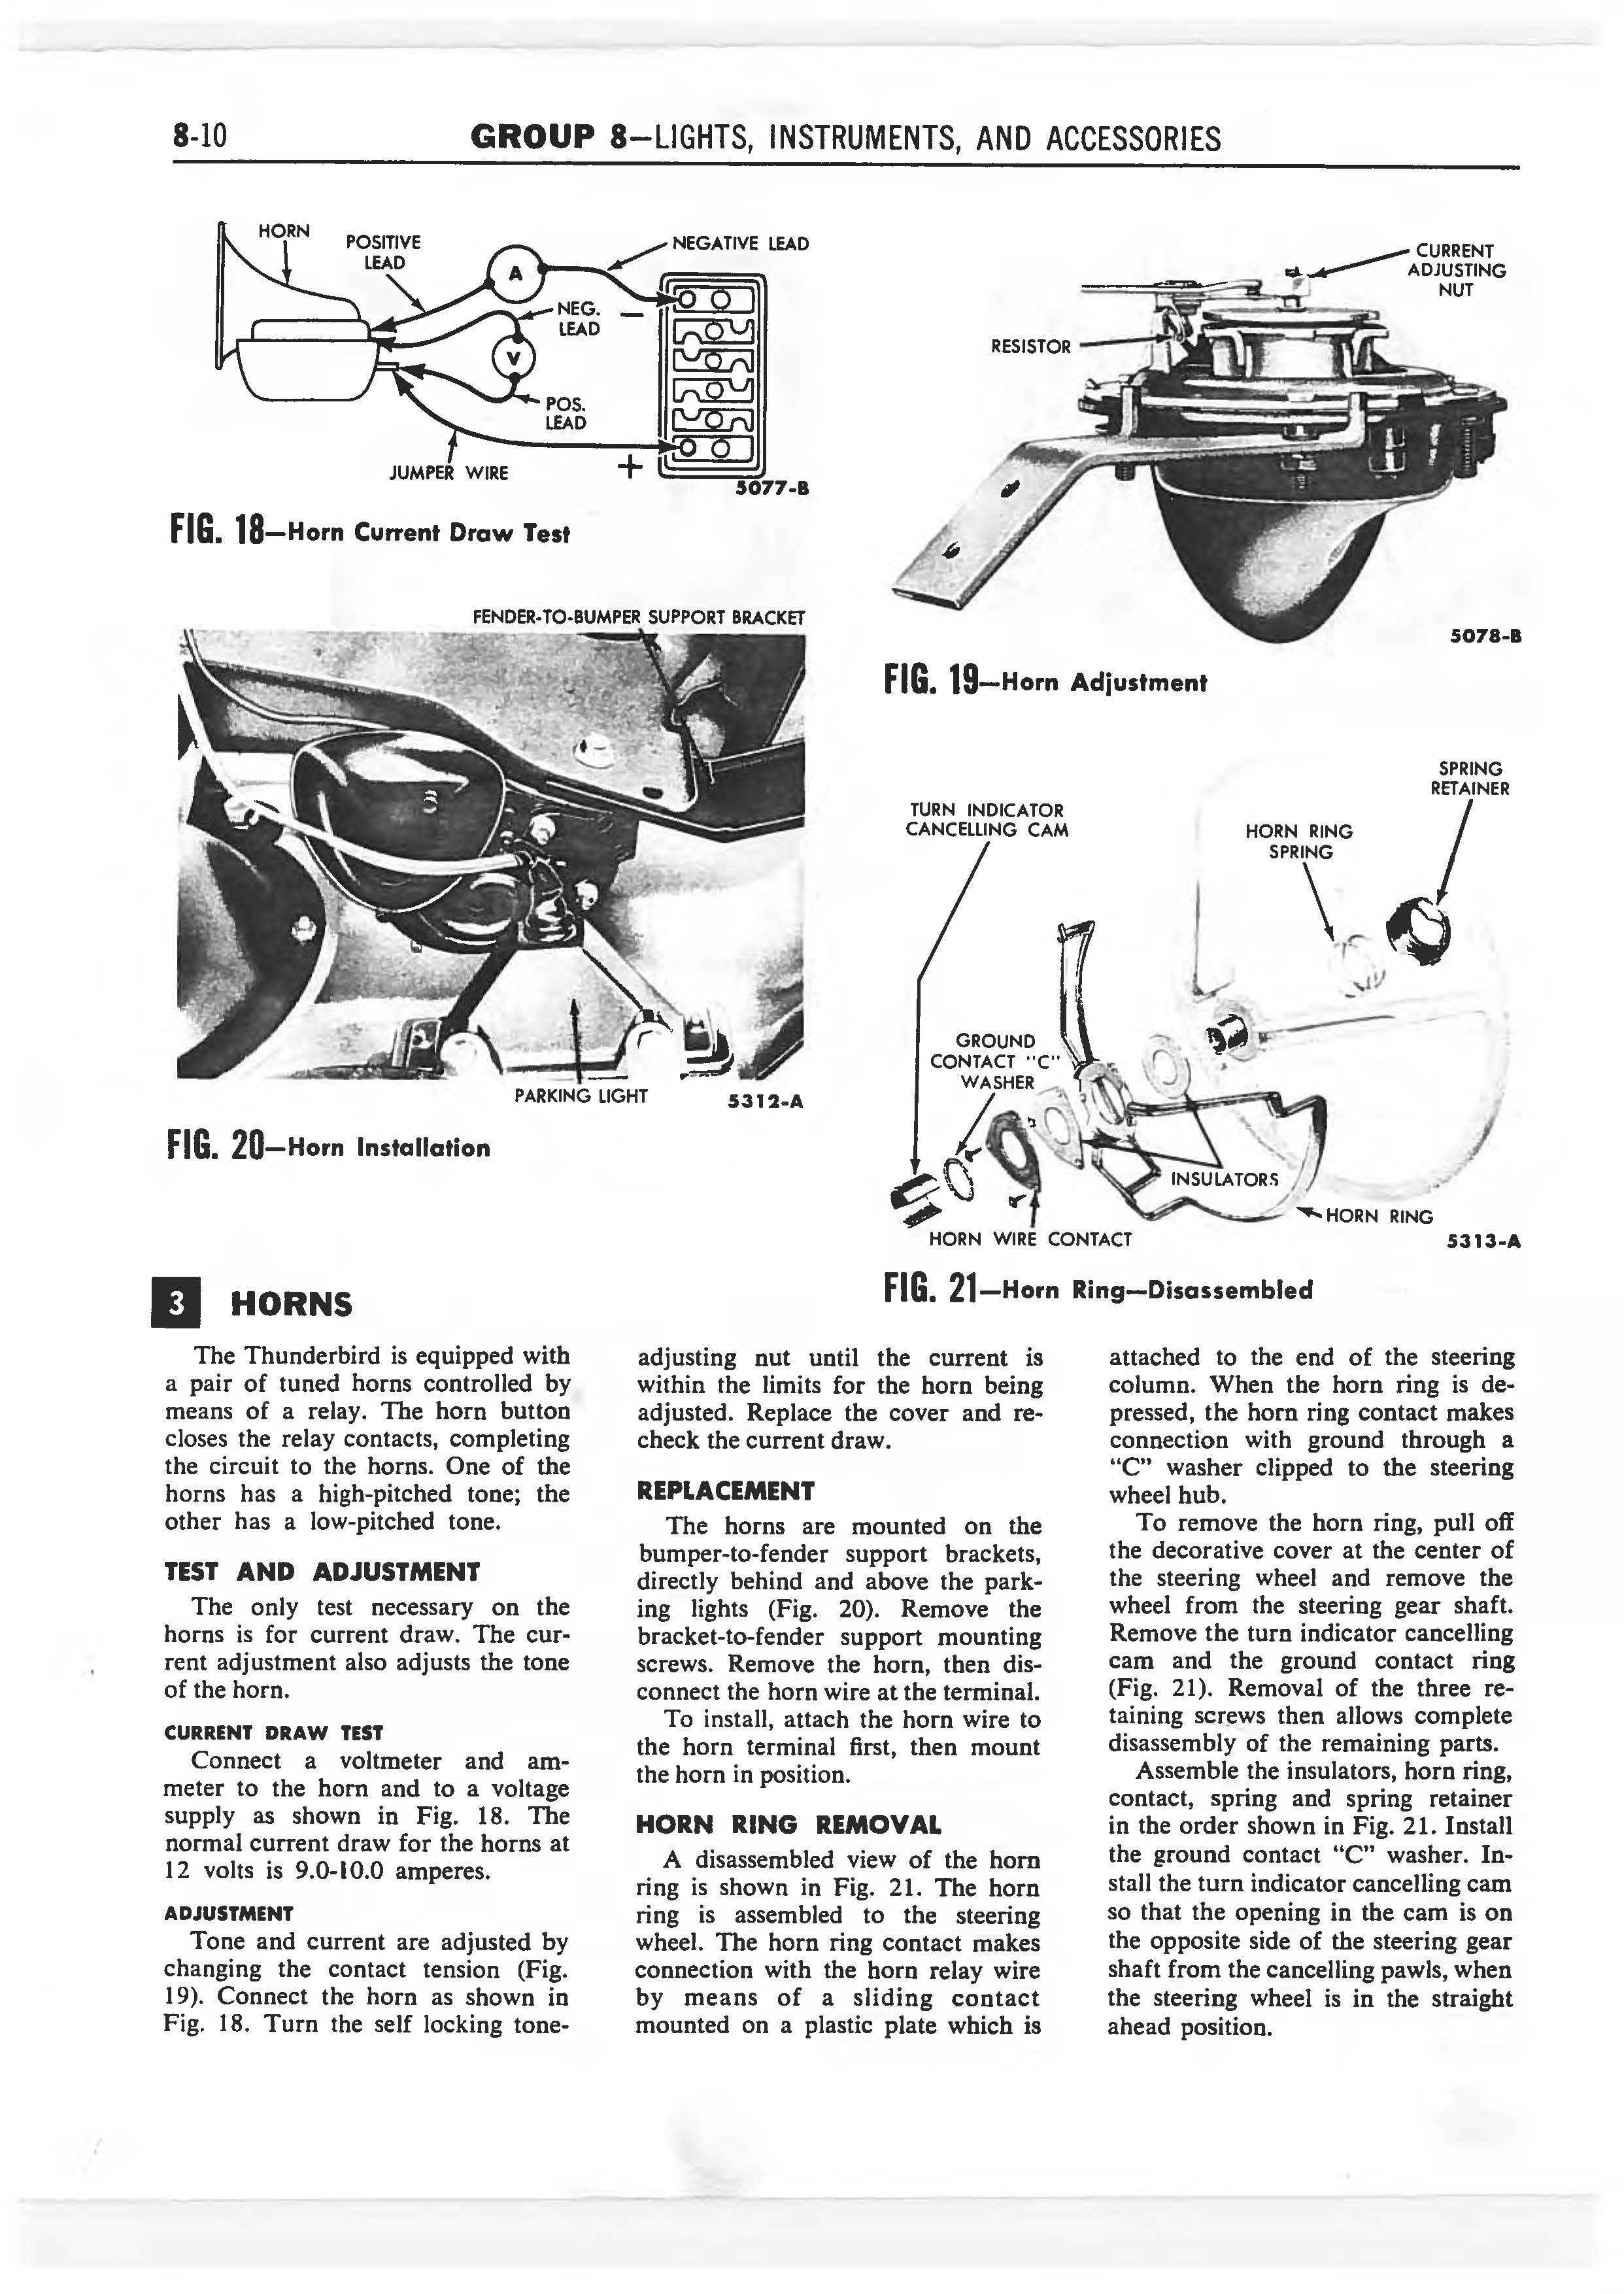 1958 Ford Thunderbird Shop Manual page 275 of 360